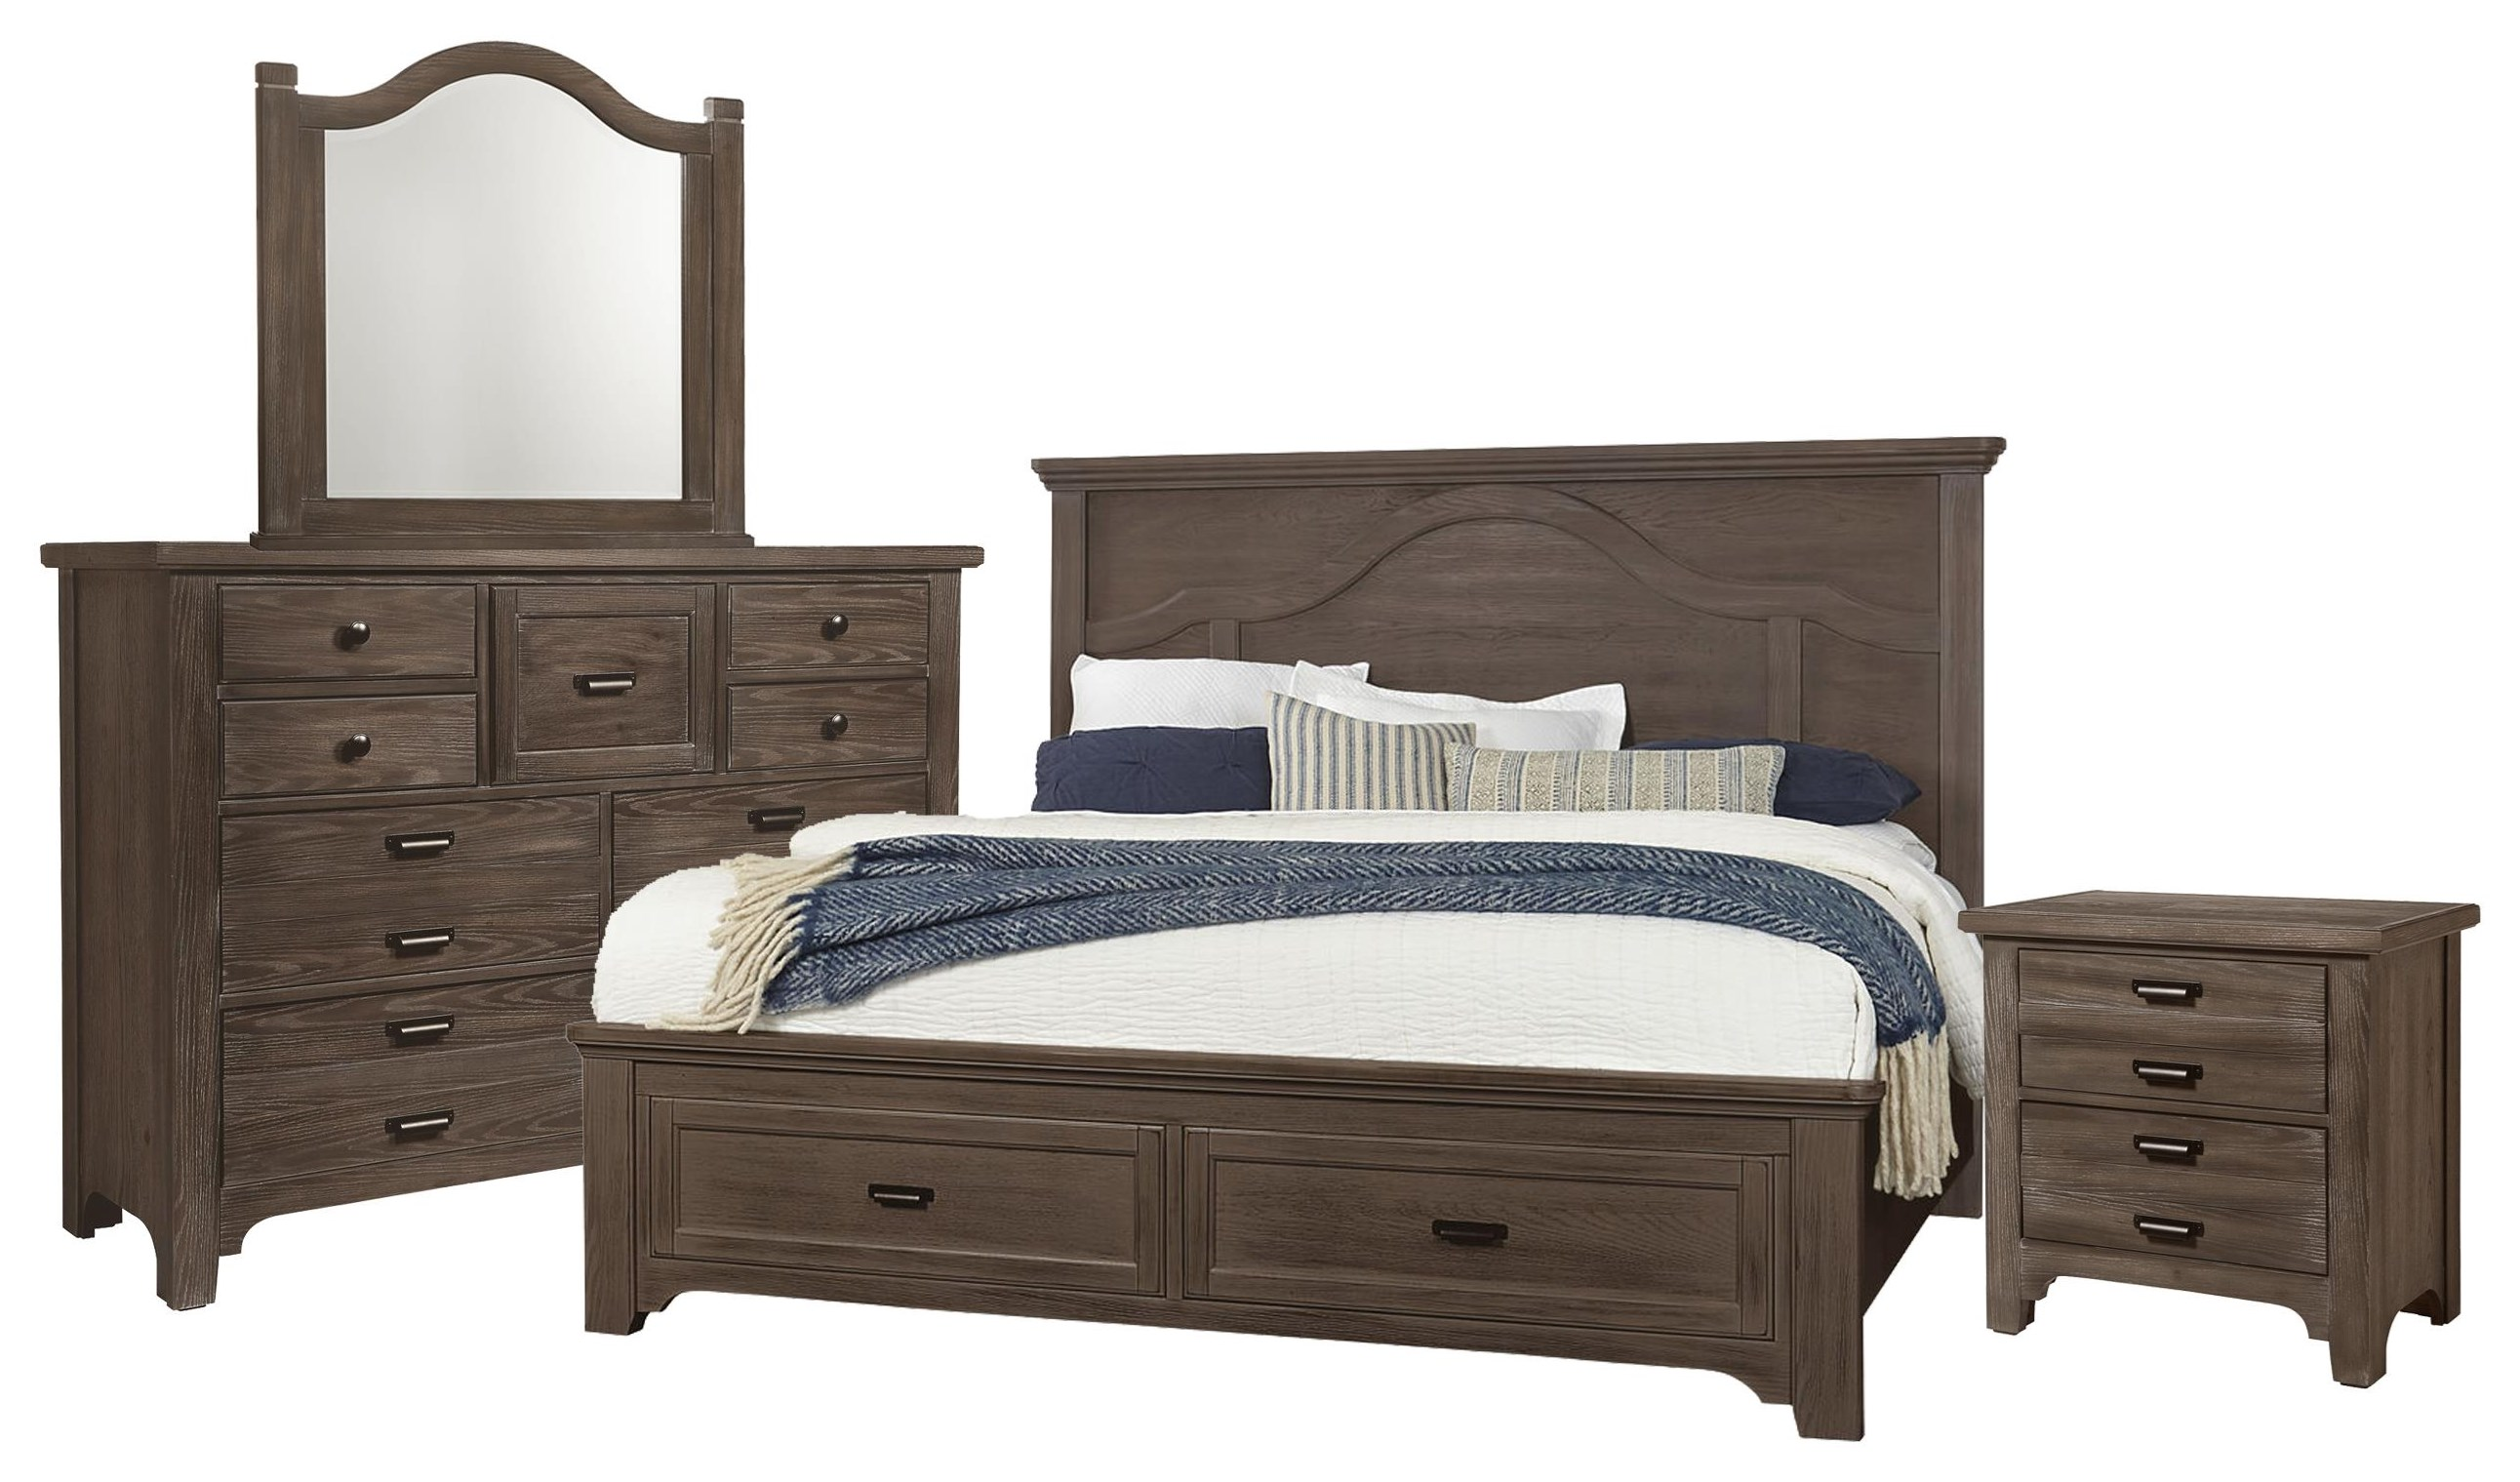 Bungalo Home King Mantel, Dresser,Mirror, Nightstand by Vaughan Bassett at Johnny Janosik